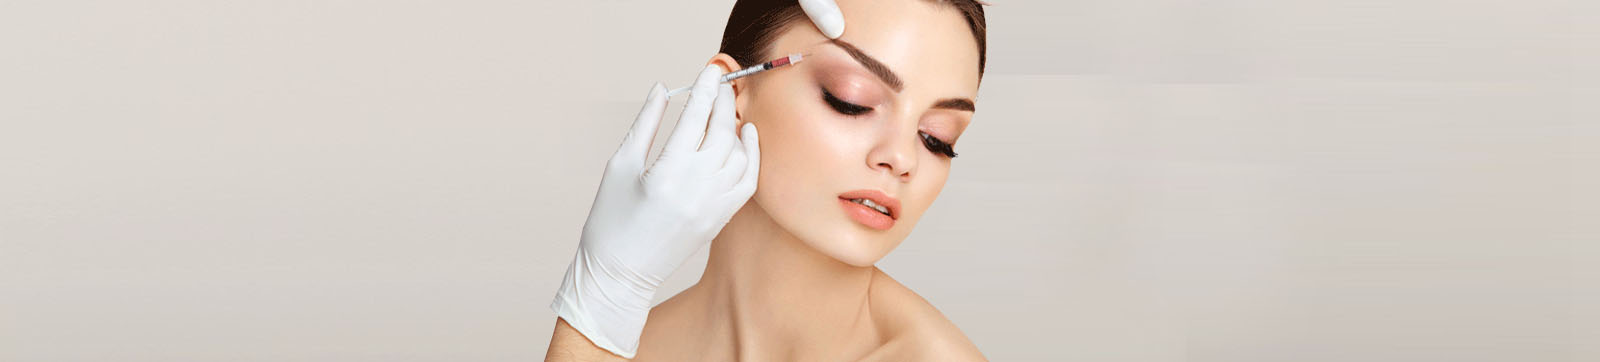 botox clinic in delhi, Prp treatment for acne scars, Microdermabrasion treatment cost in delhi, Best wrinkle filler for lines around mouth in rajouri garden, Microneedling for acne scar in delhi, Botox lip injections in rajouri garden